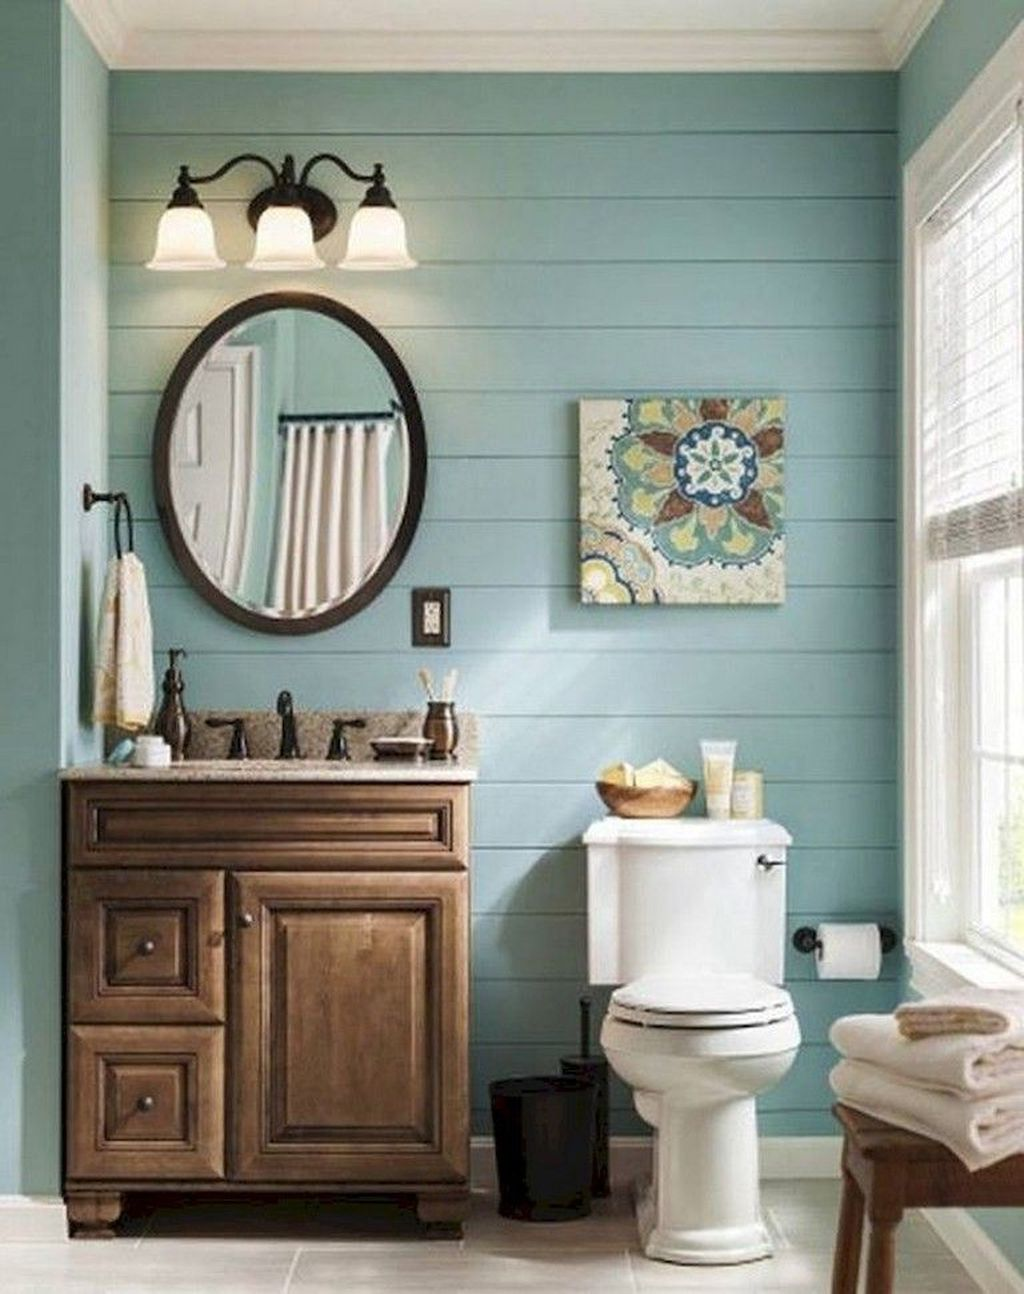 Awesome Coastal Style Bathroom Decorating Ideas 20